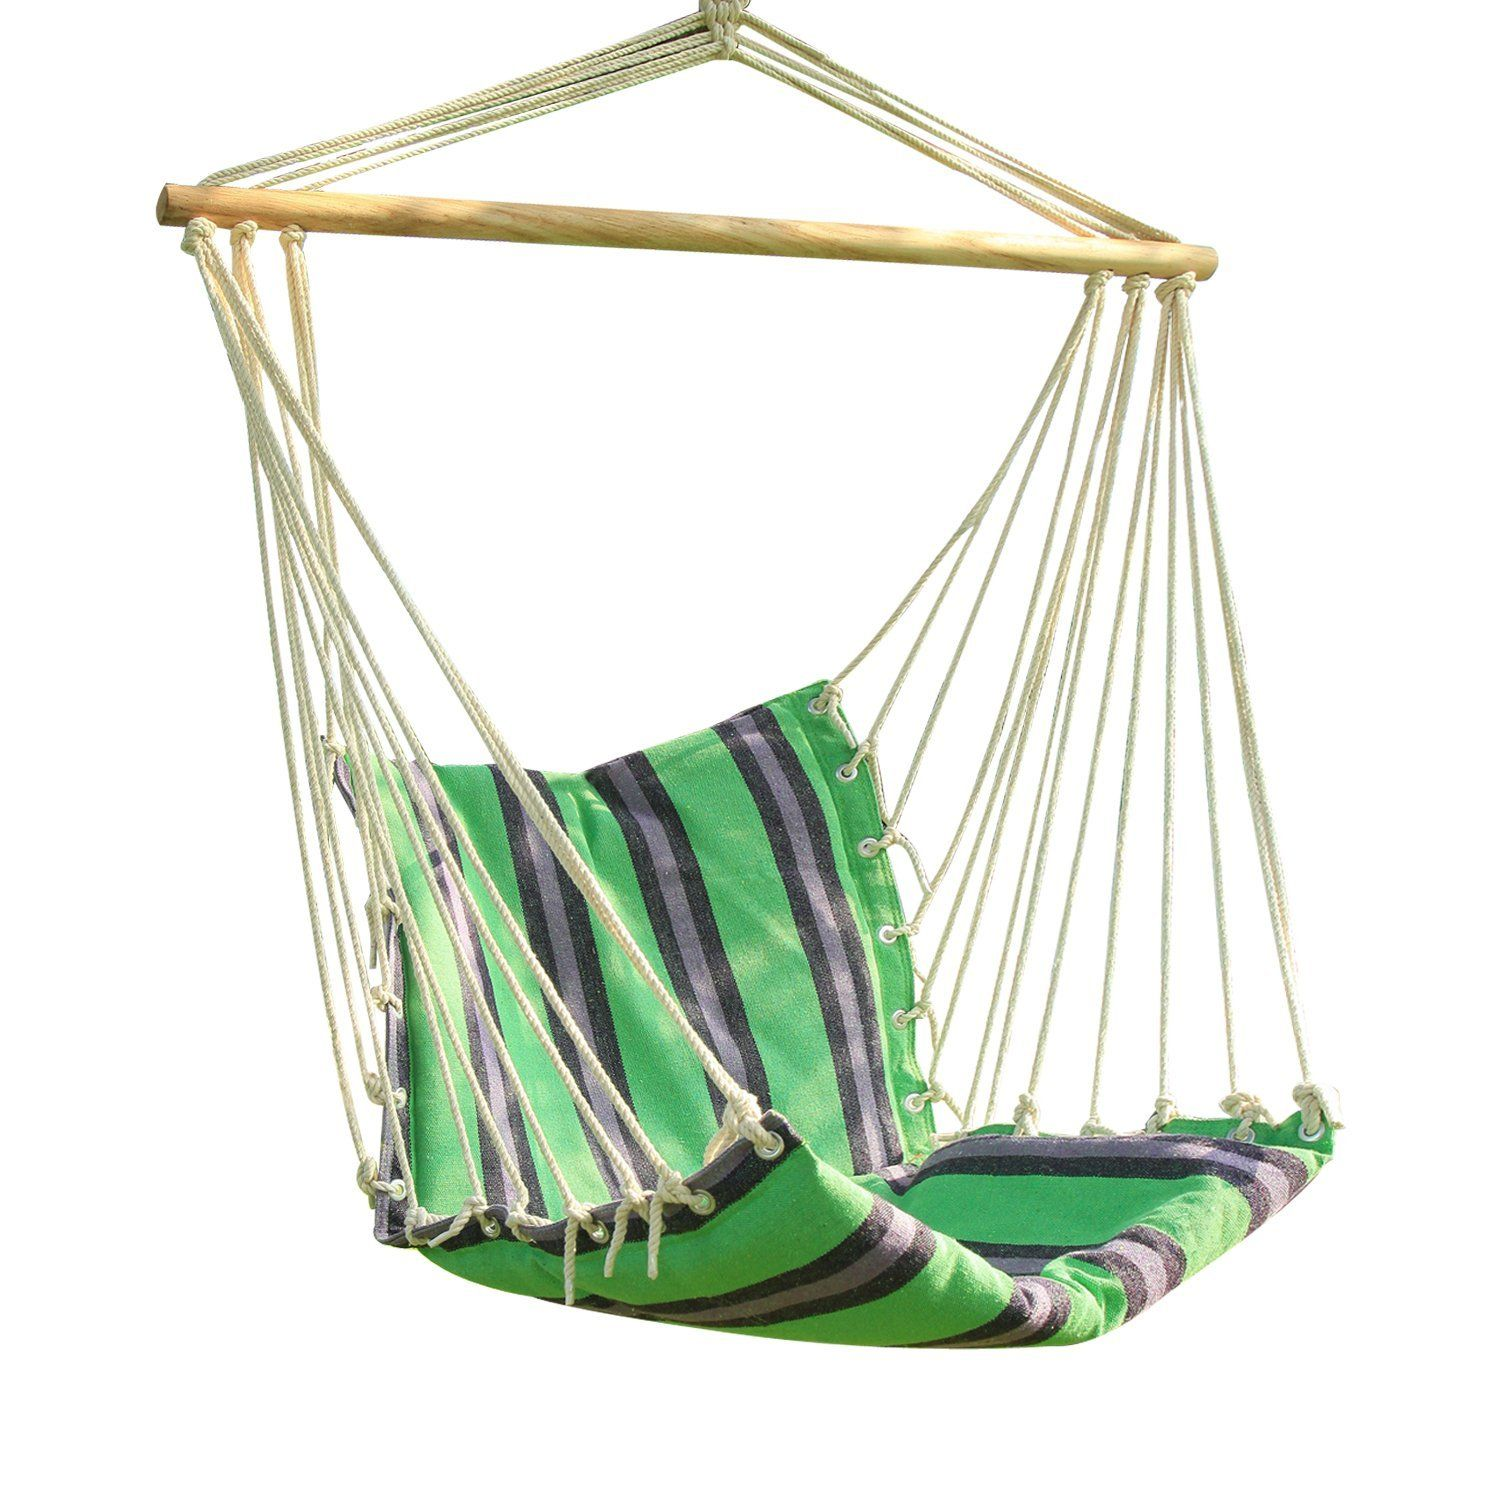 Joveco suspended hammock chair indooroutdoor valentineus day sale